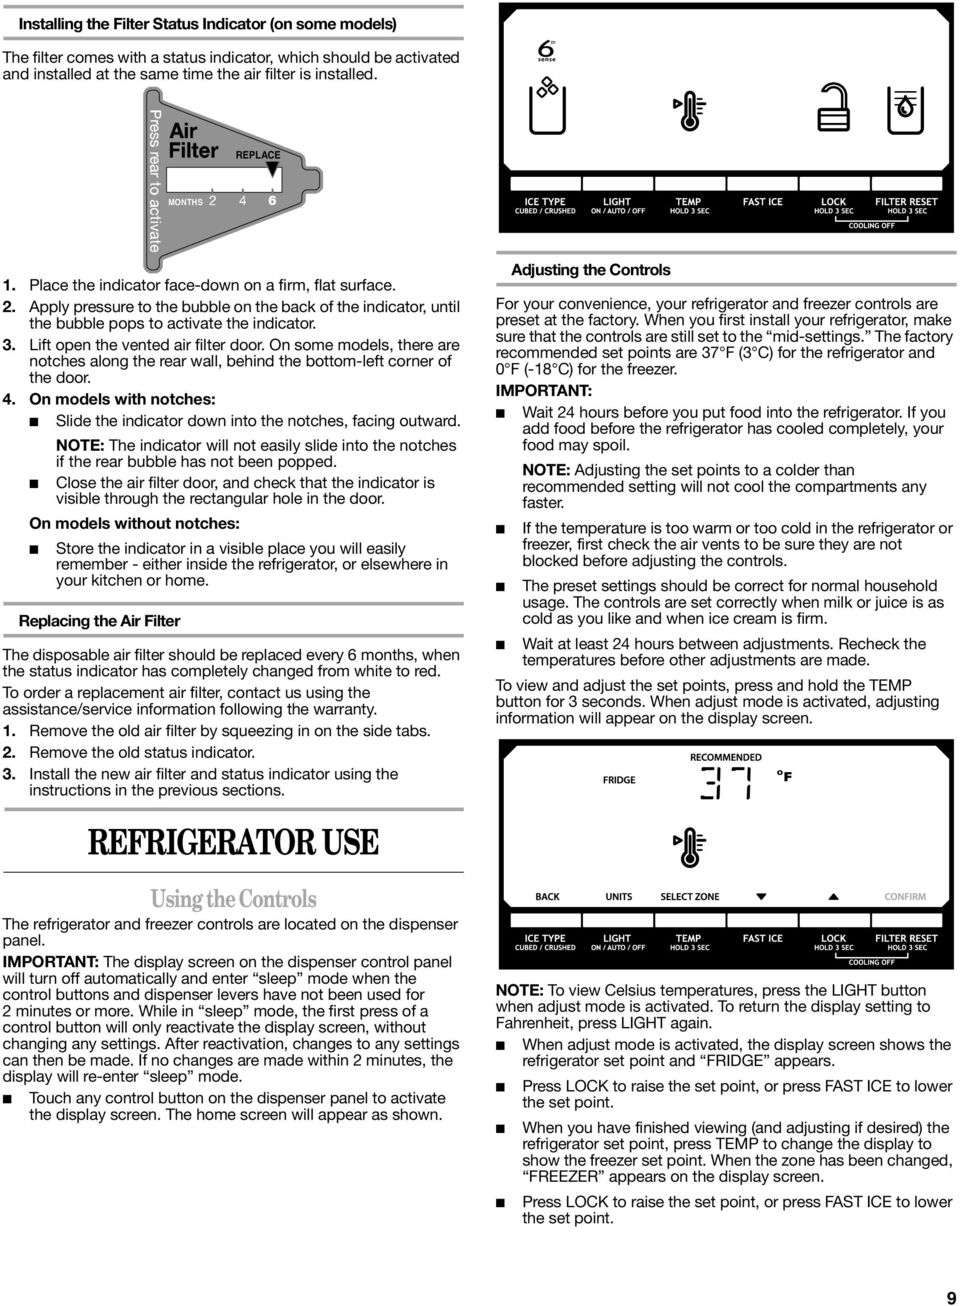 REFRIGERATOR USER INSTRUCTIONS - PDF